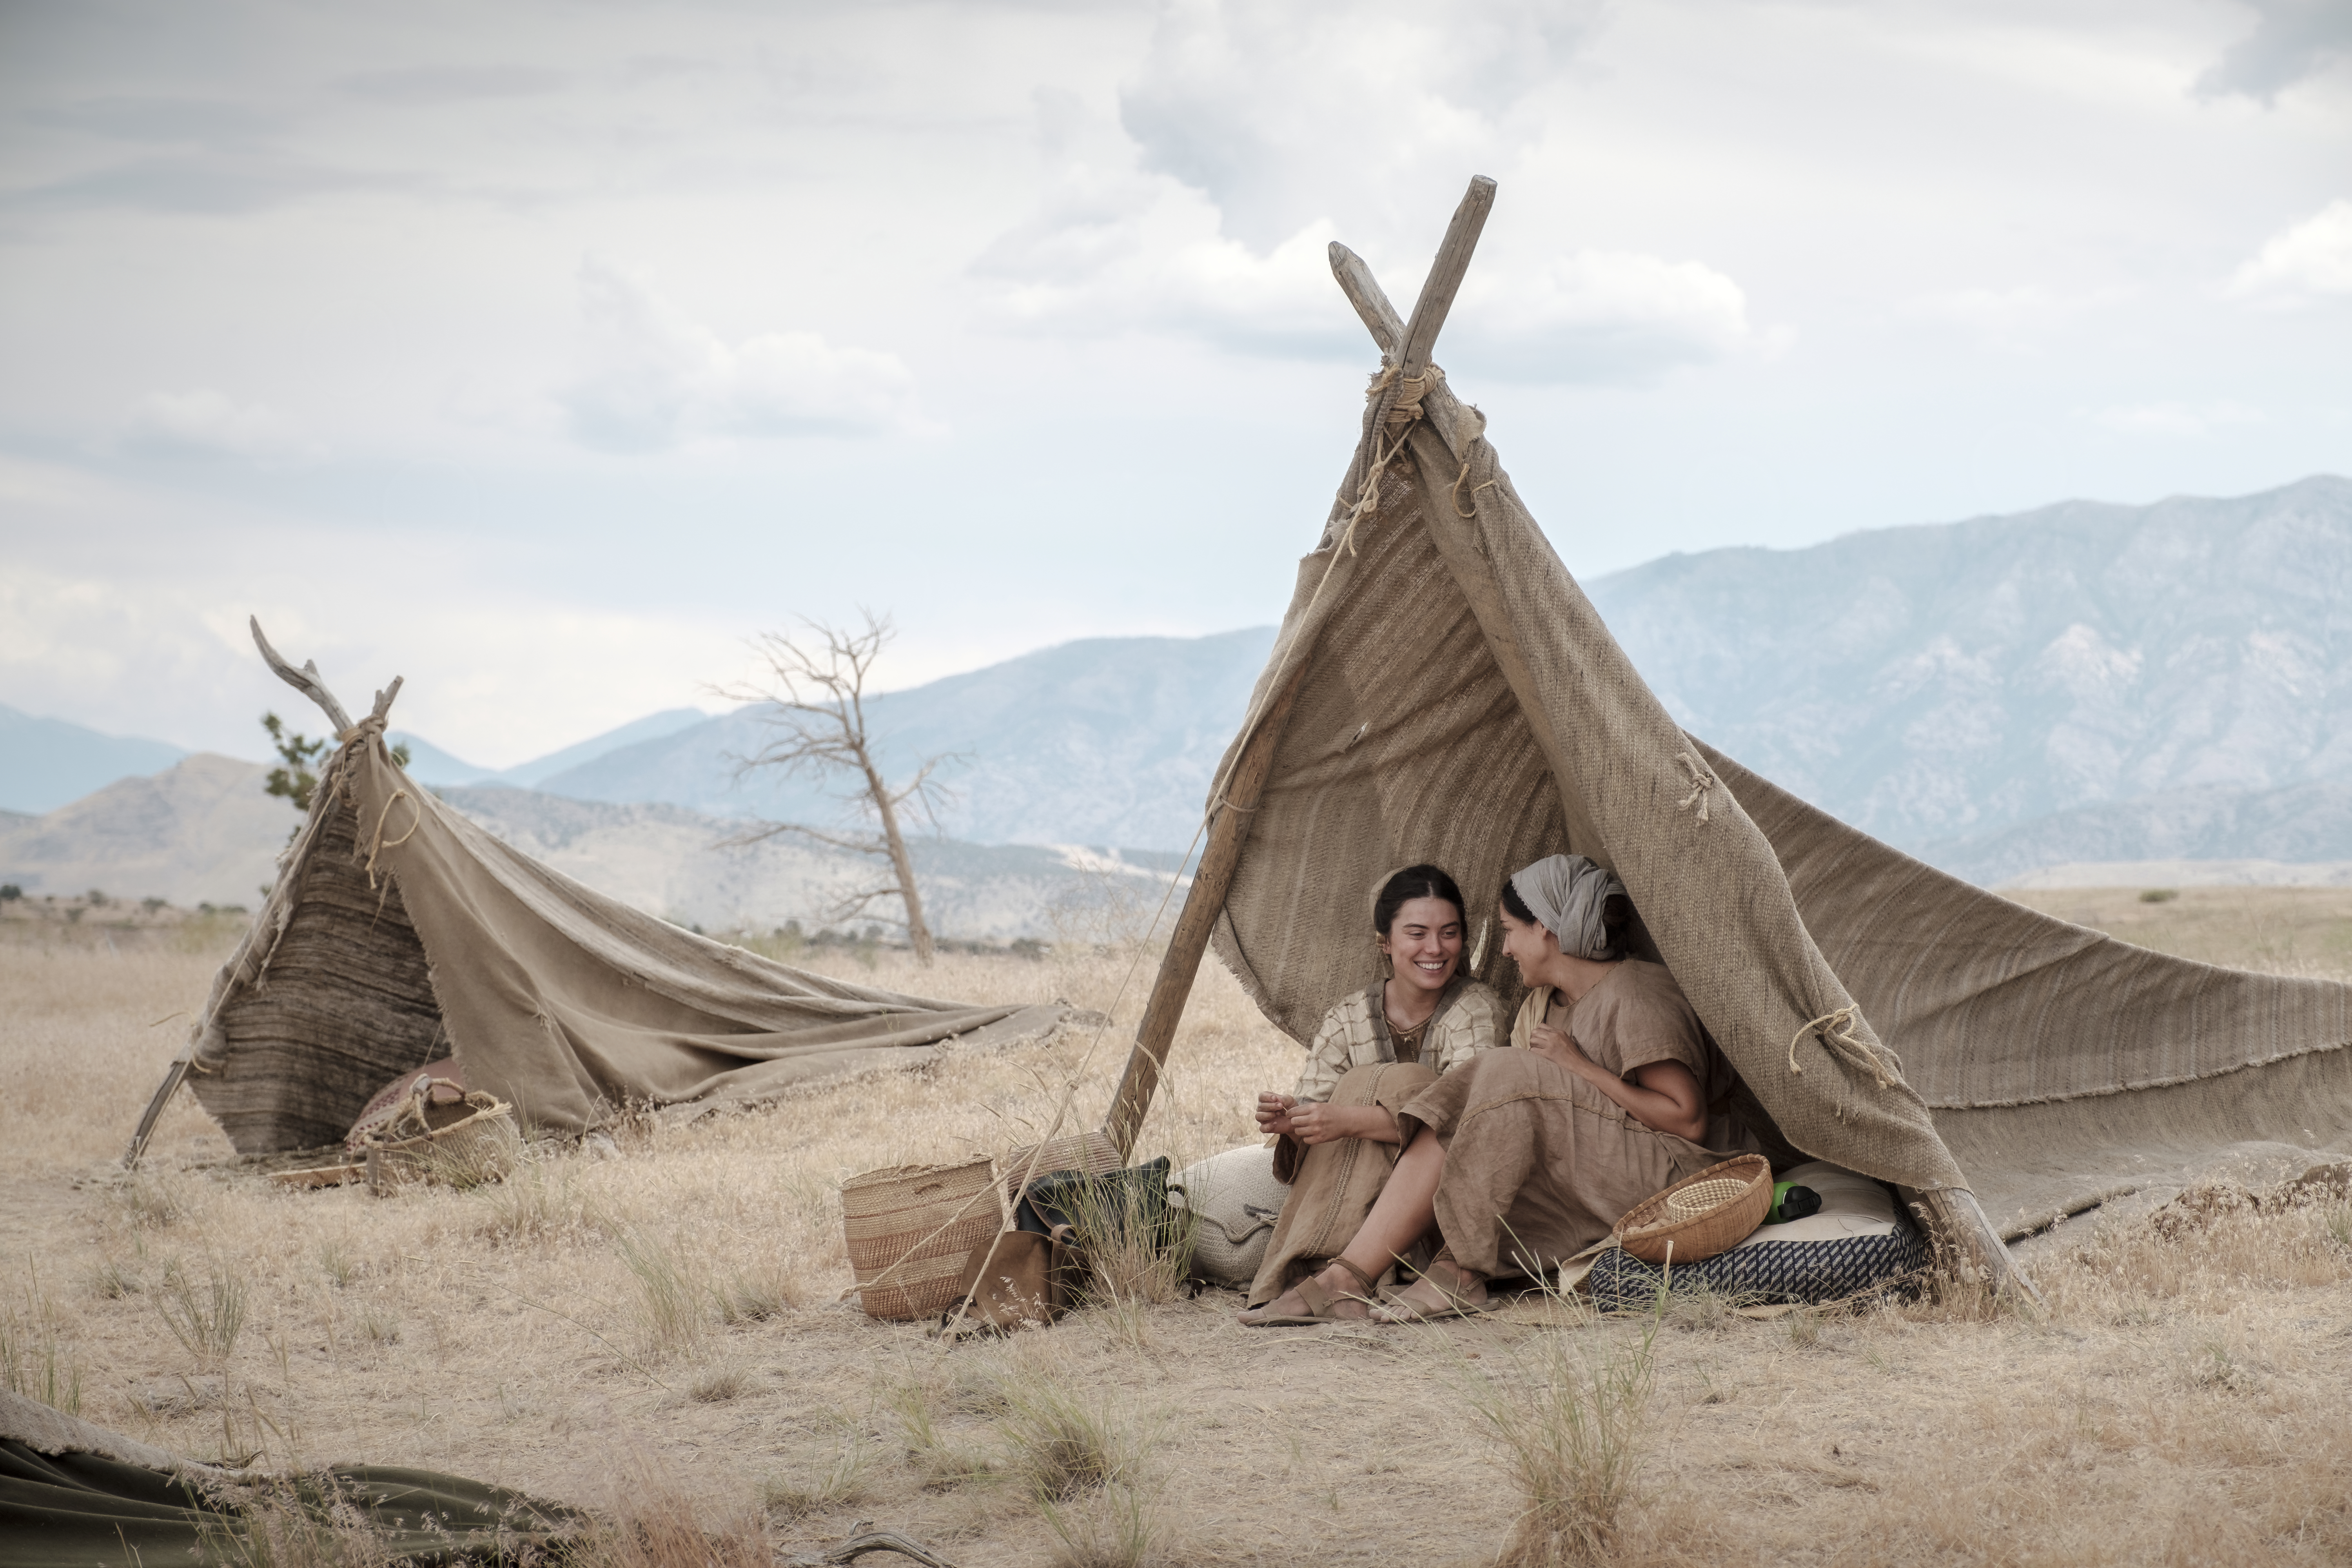 Ishmael's daughters sit beneath a tent in the wilderness.